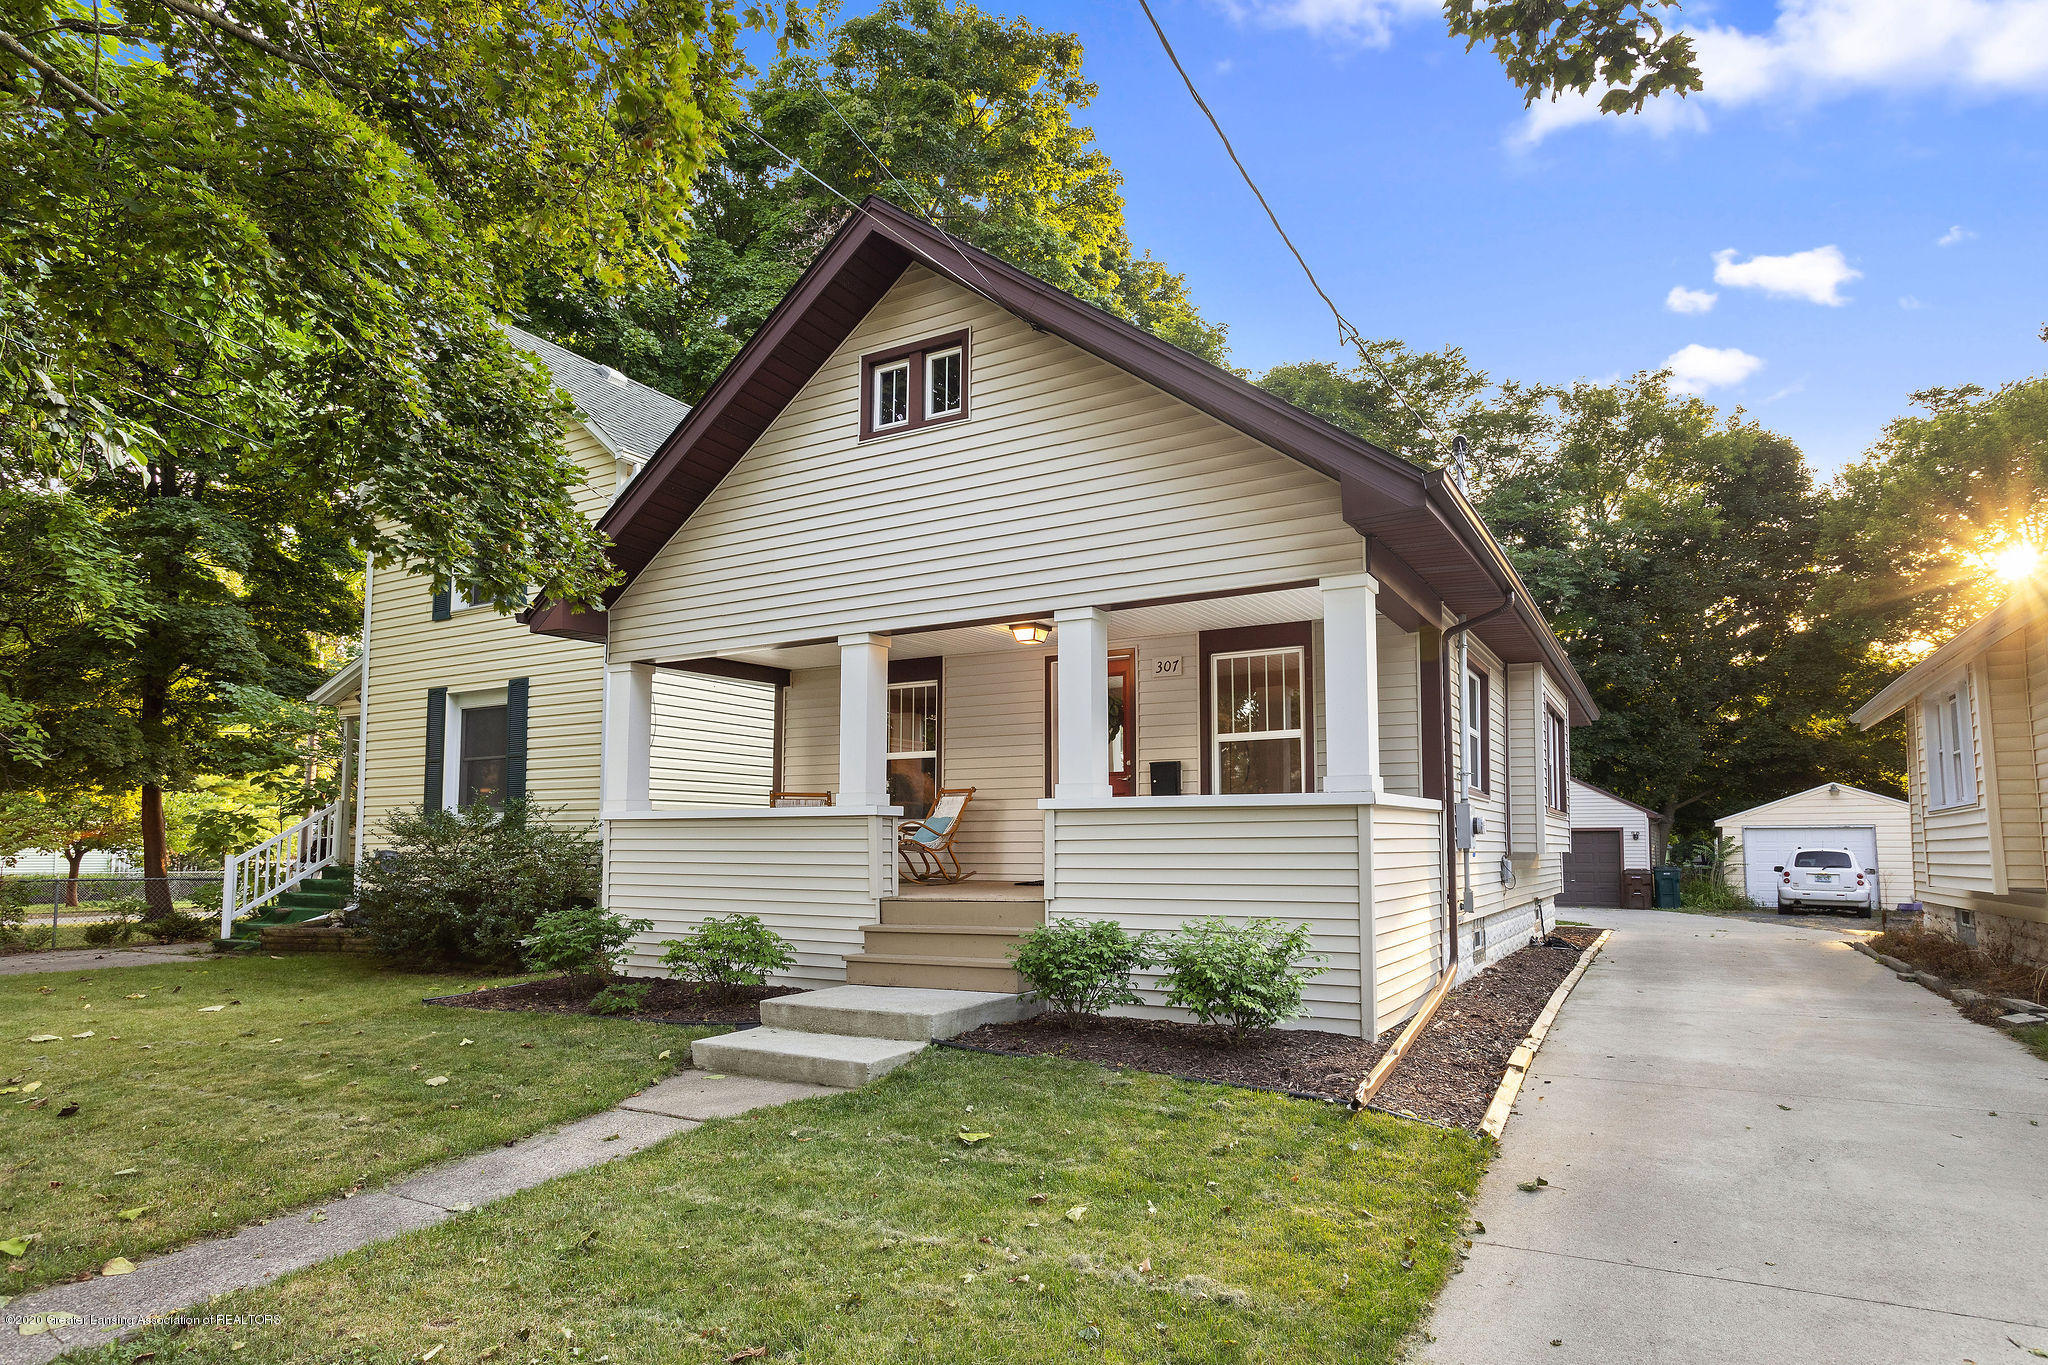 307 N Hayford Ave - Front - 1